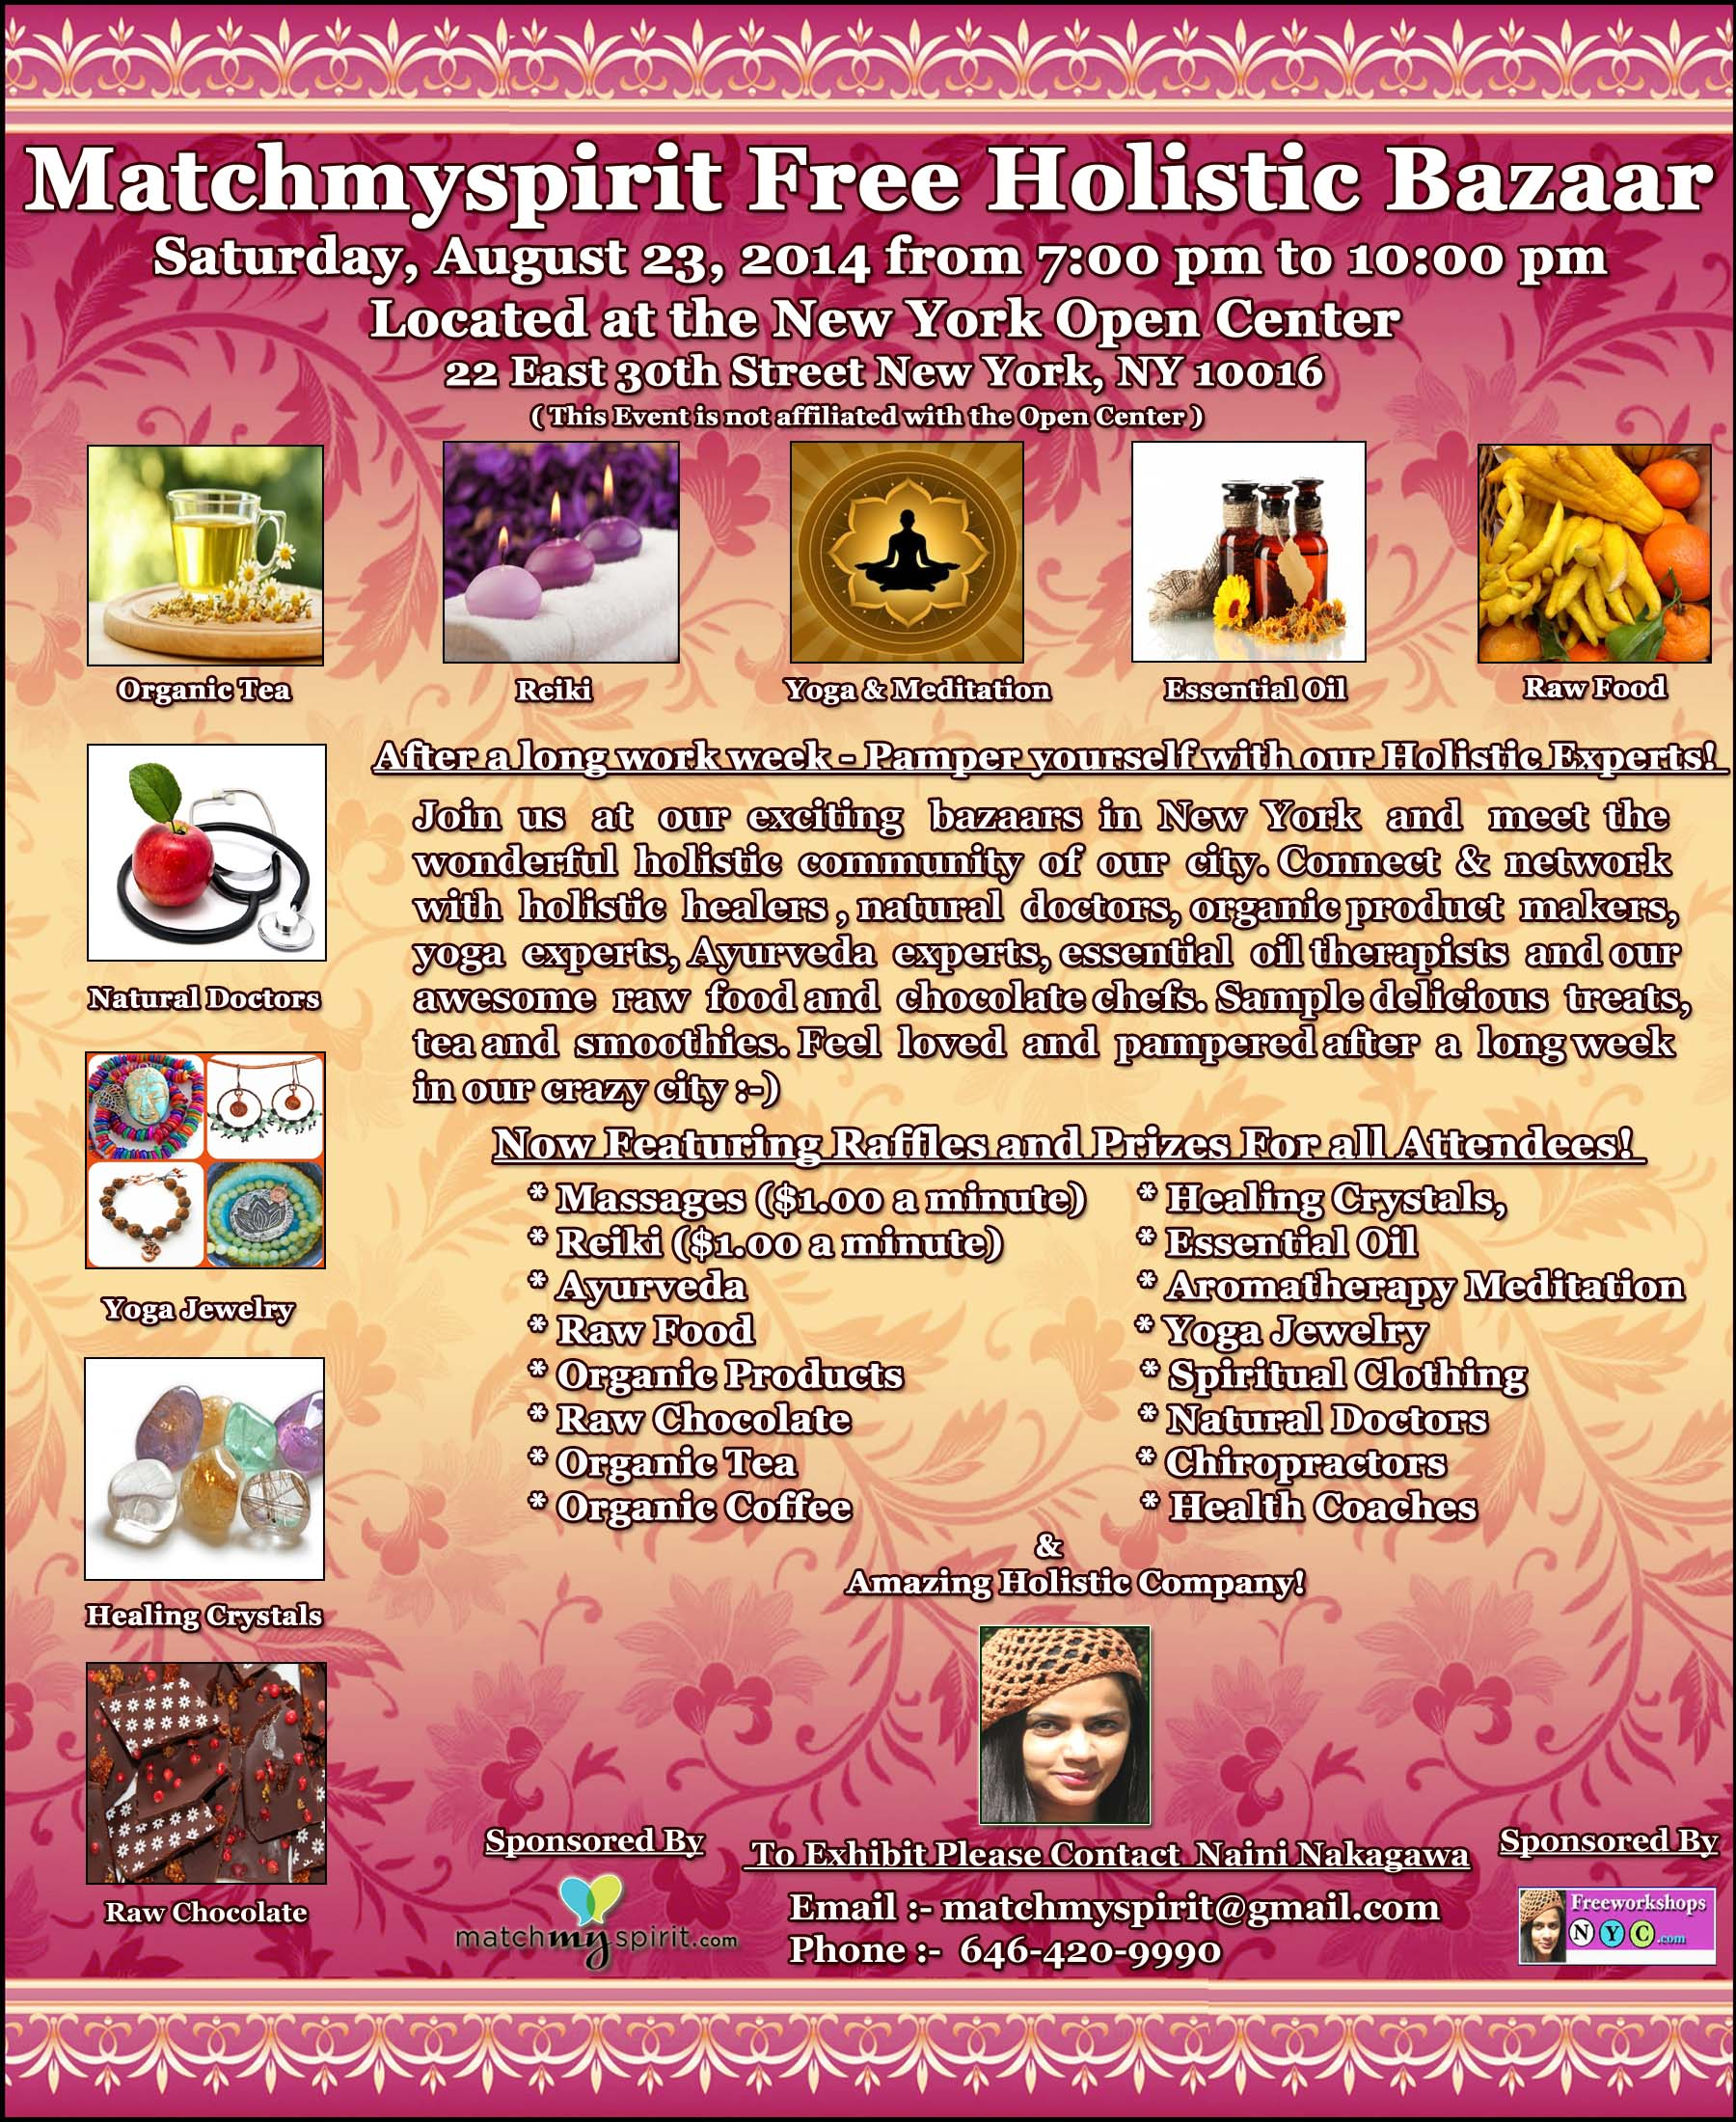 Matchmyspirit Free Holistic Bazaar at New York Open Center